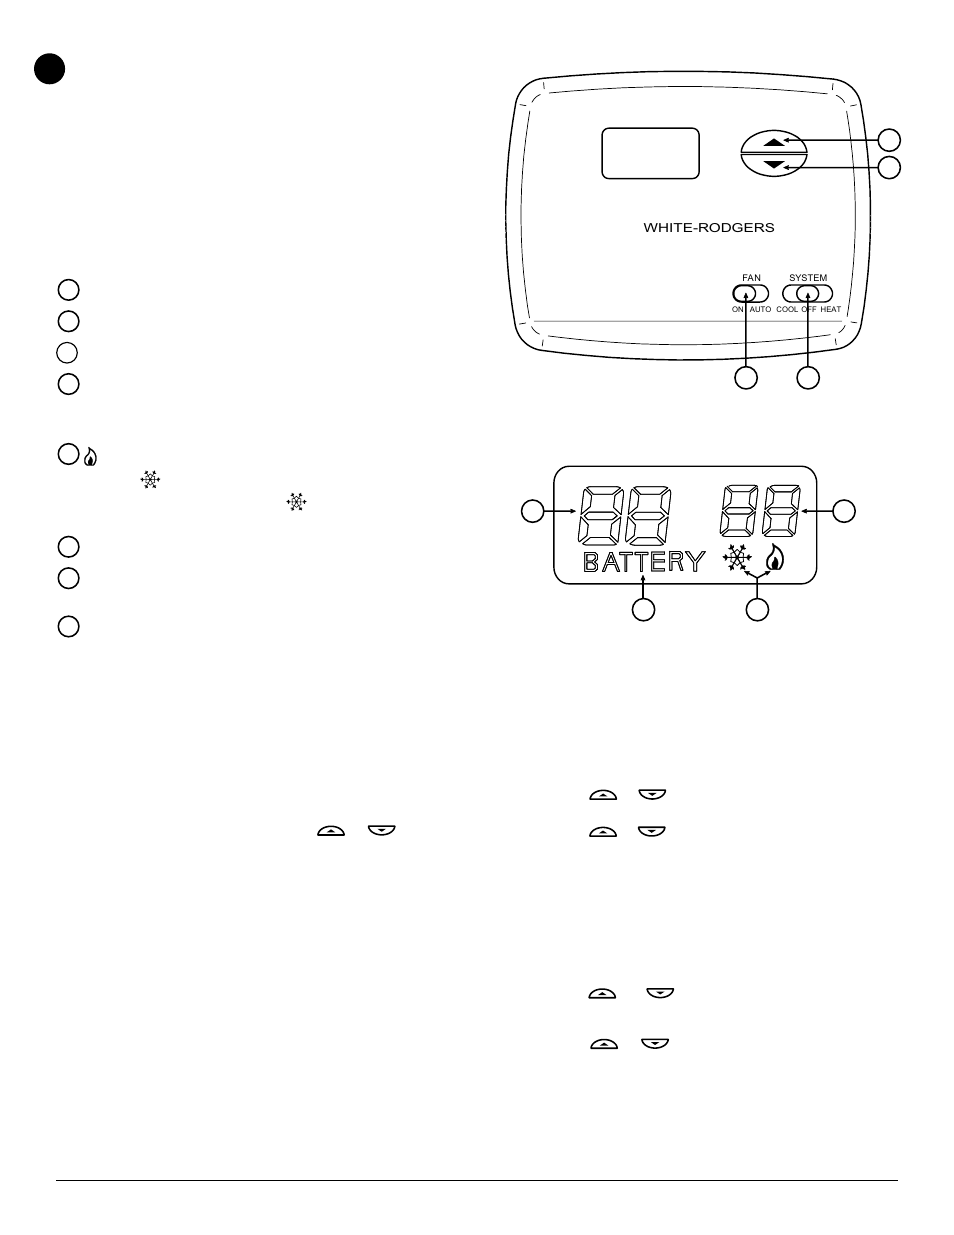 Check Thermostat Operation